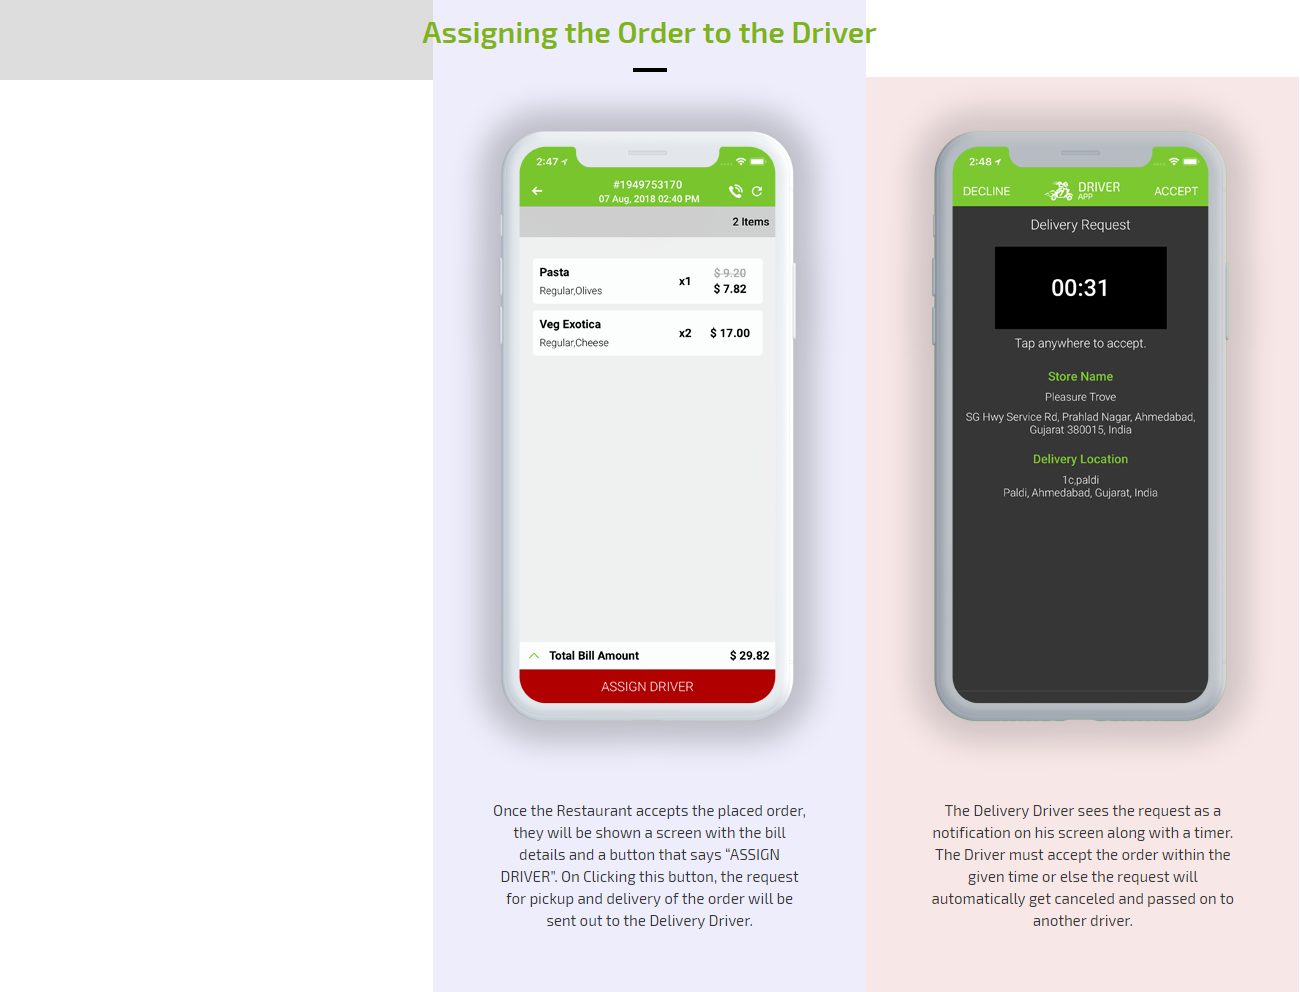 Assigning order to driver